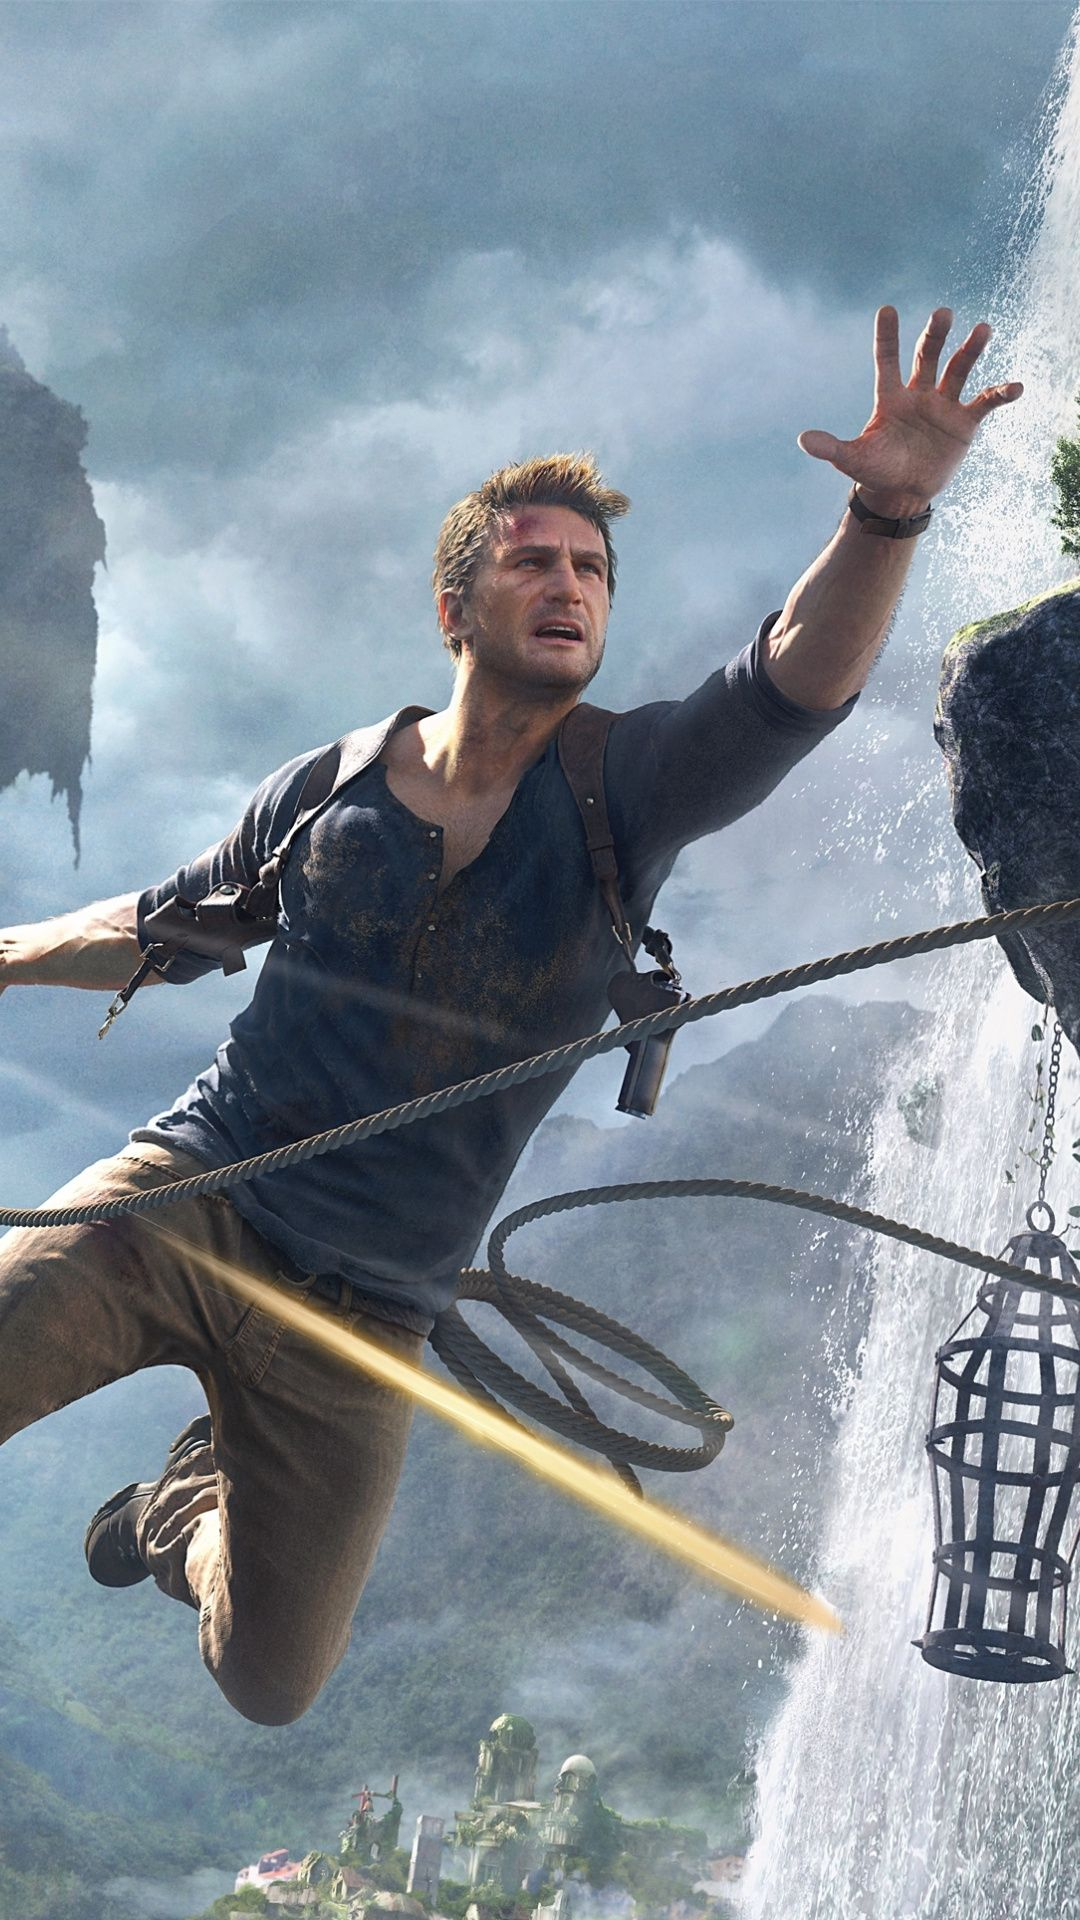 3840x2130 Uncharted 4 A Thiefs End 4k Wallpaper Hd Backgrounds Images Uncharted Uncharted A Thief S End A Thief S End